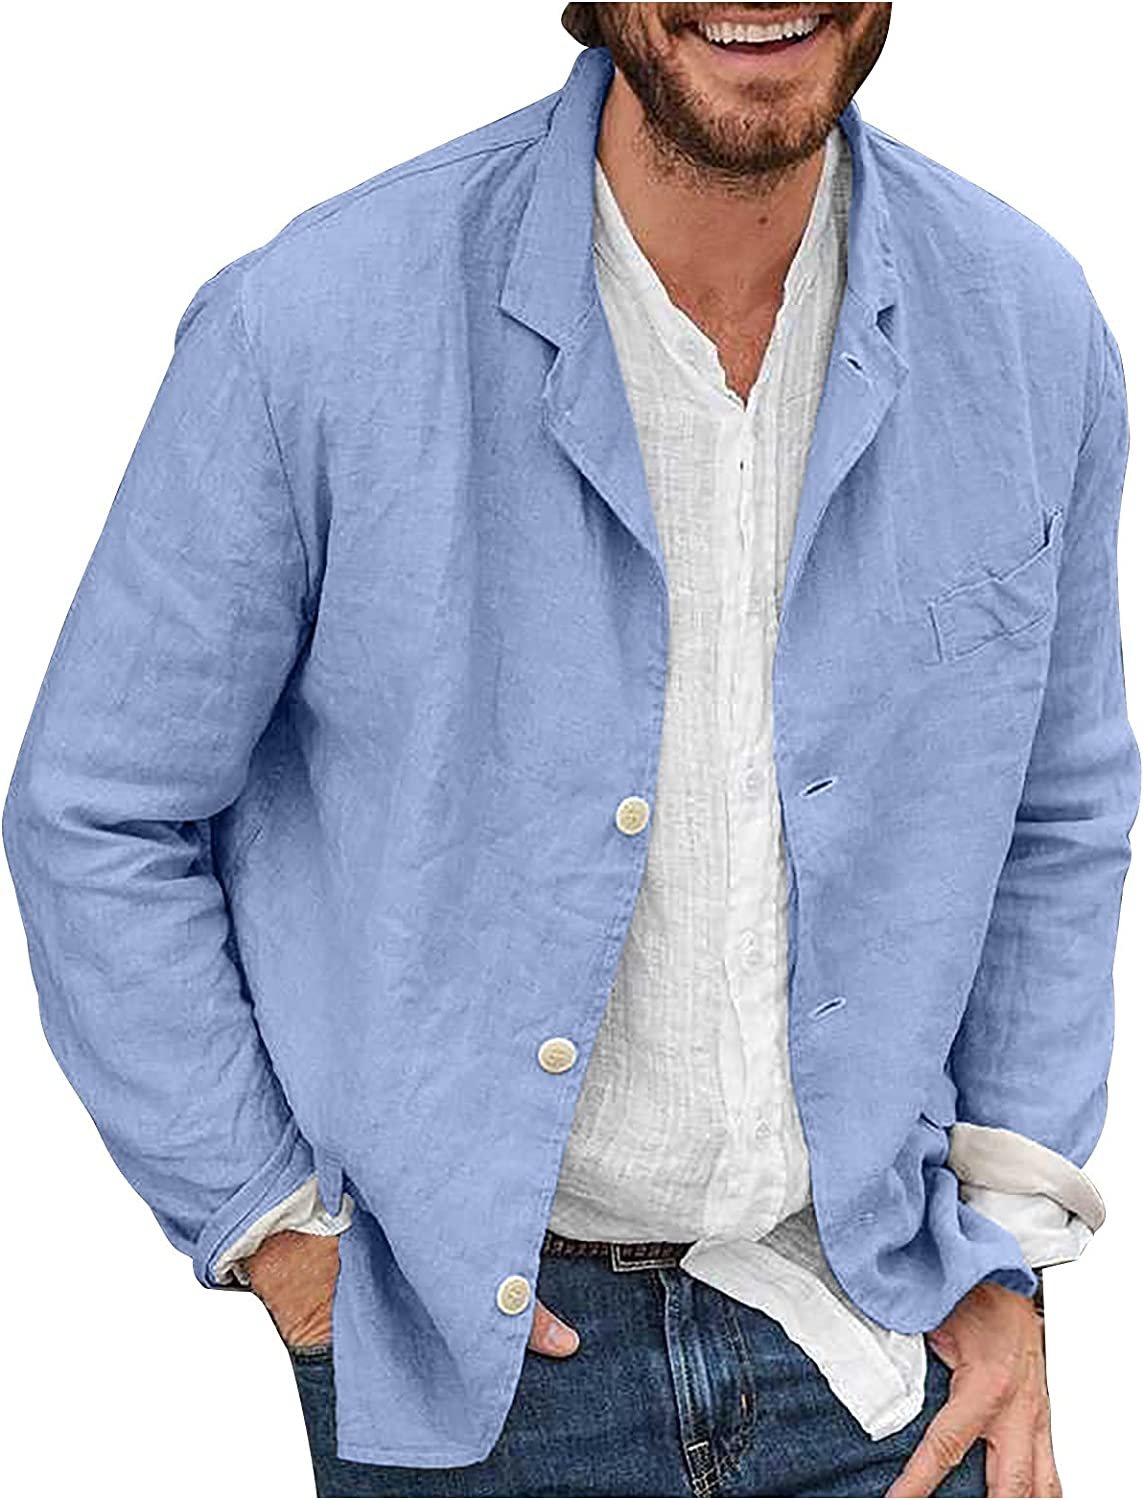 BUYYA Max 55% OFF Men's Solid Color Loose Comfortable Jacket Everyday 5% OFF Casual